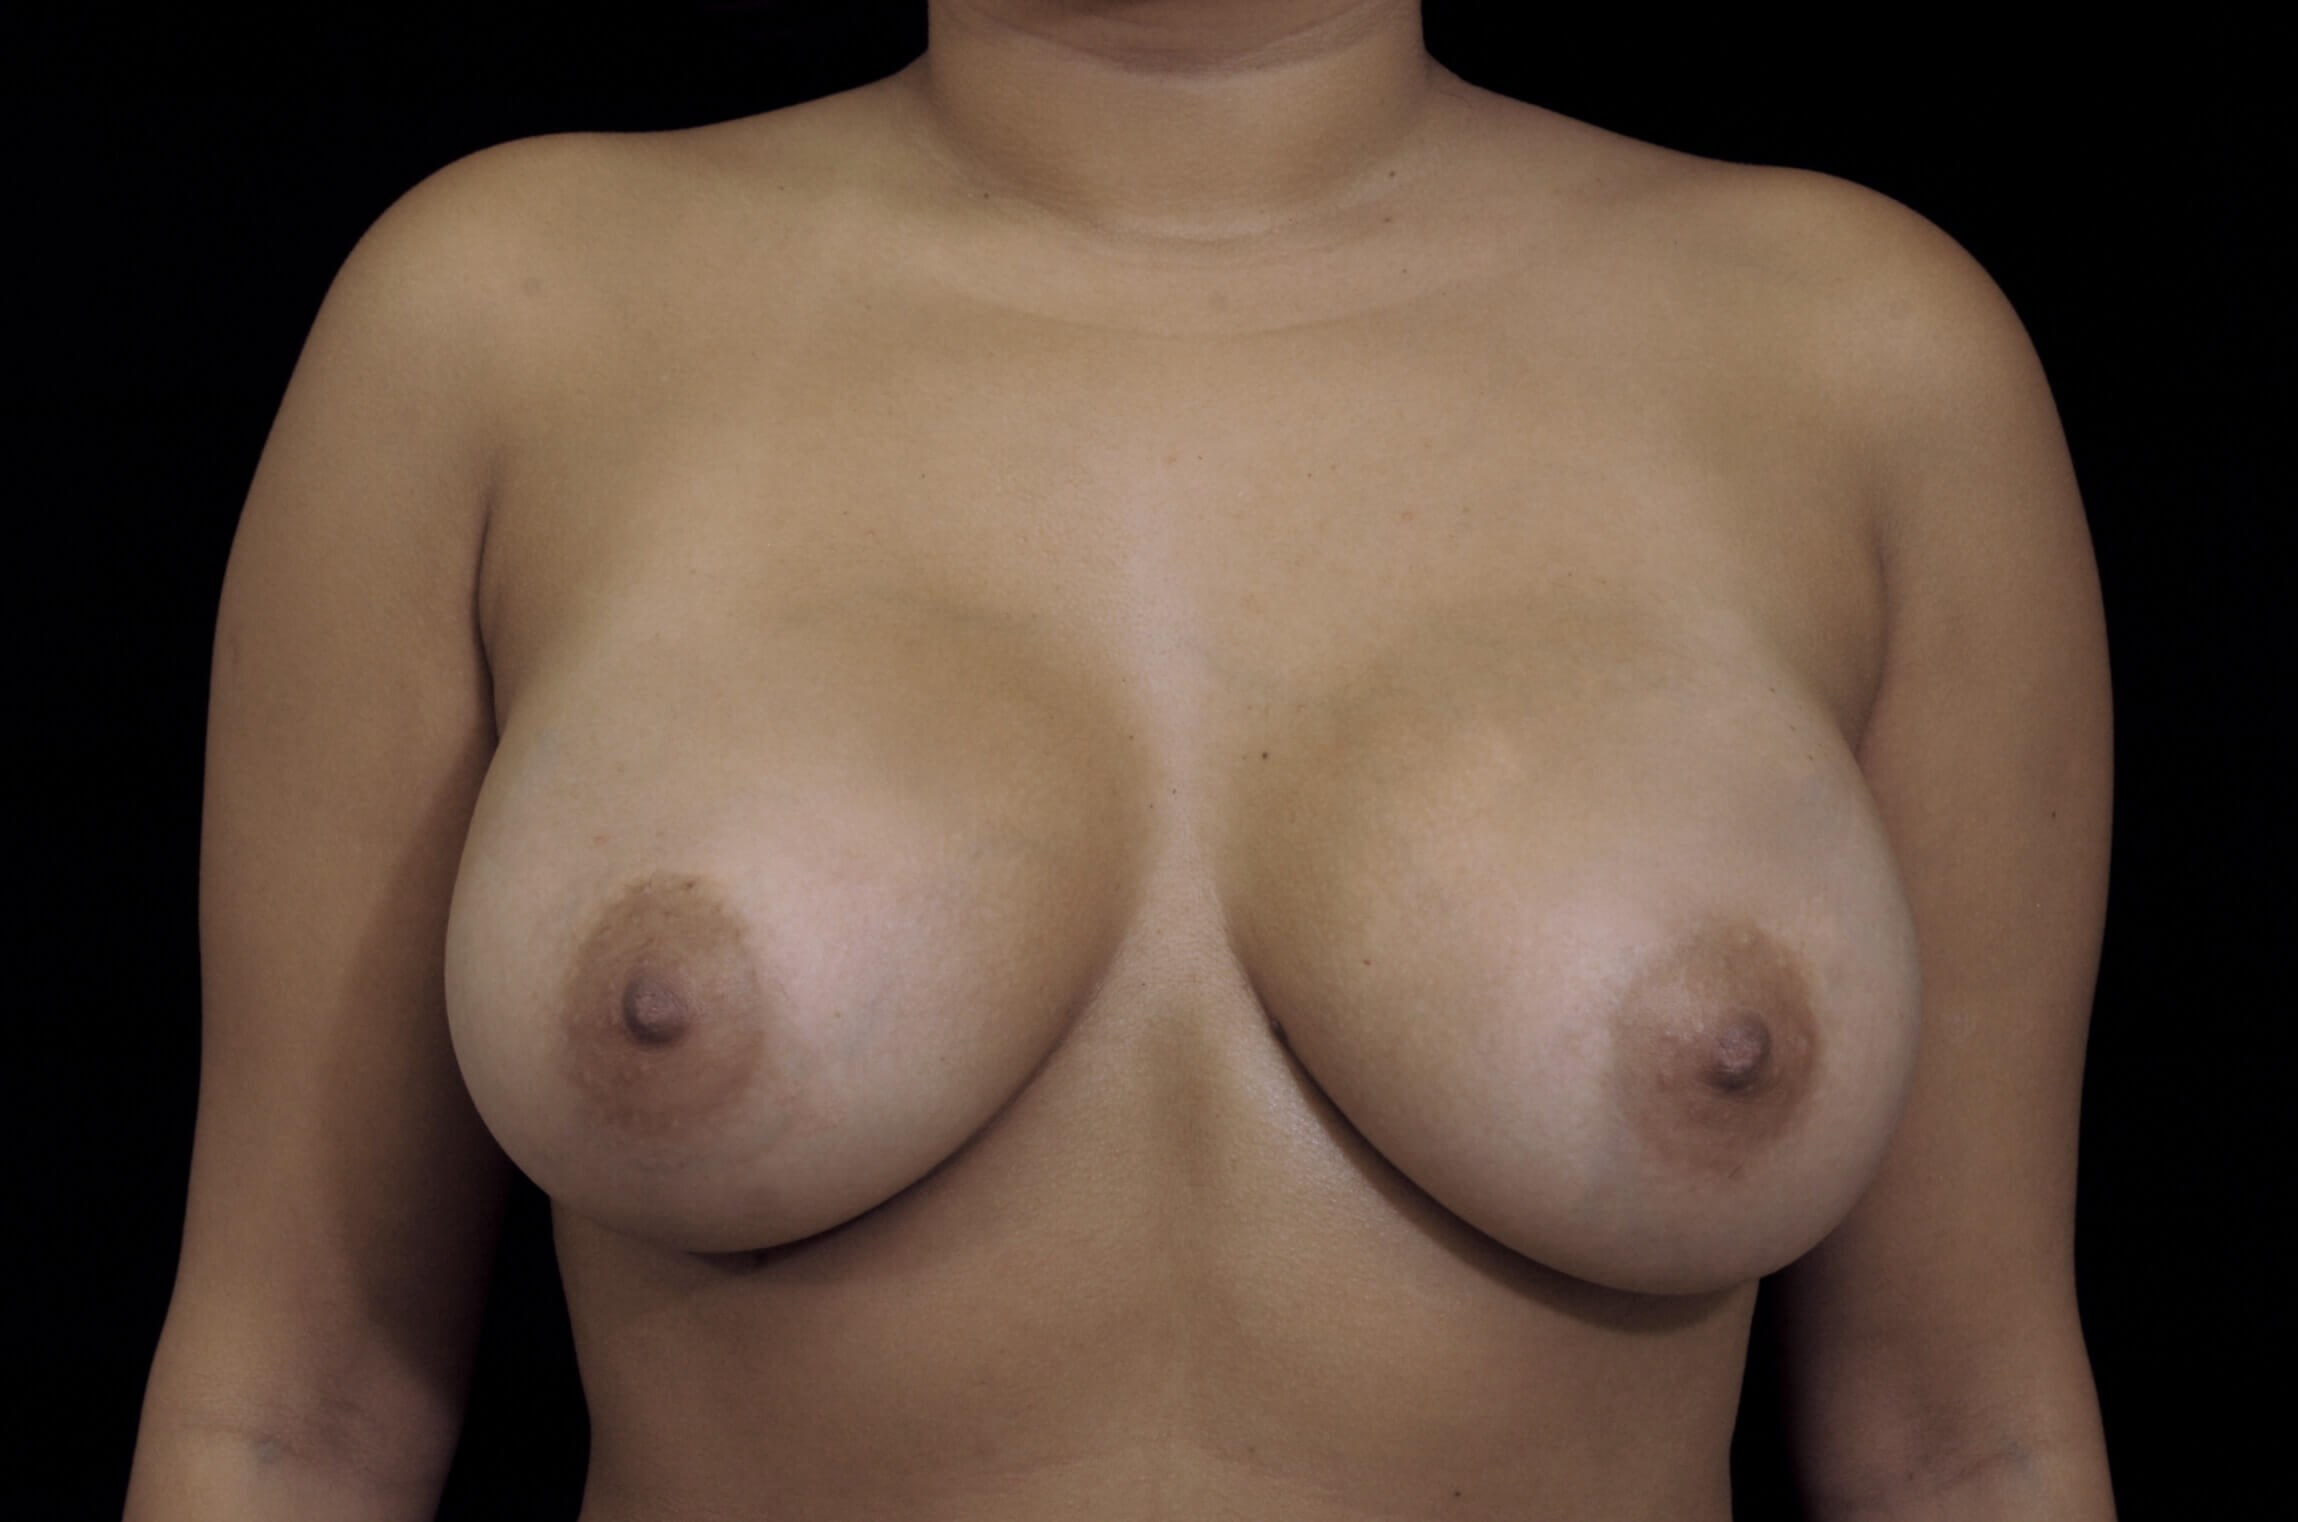 Breast Augmentation Procedure After Saline Implants